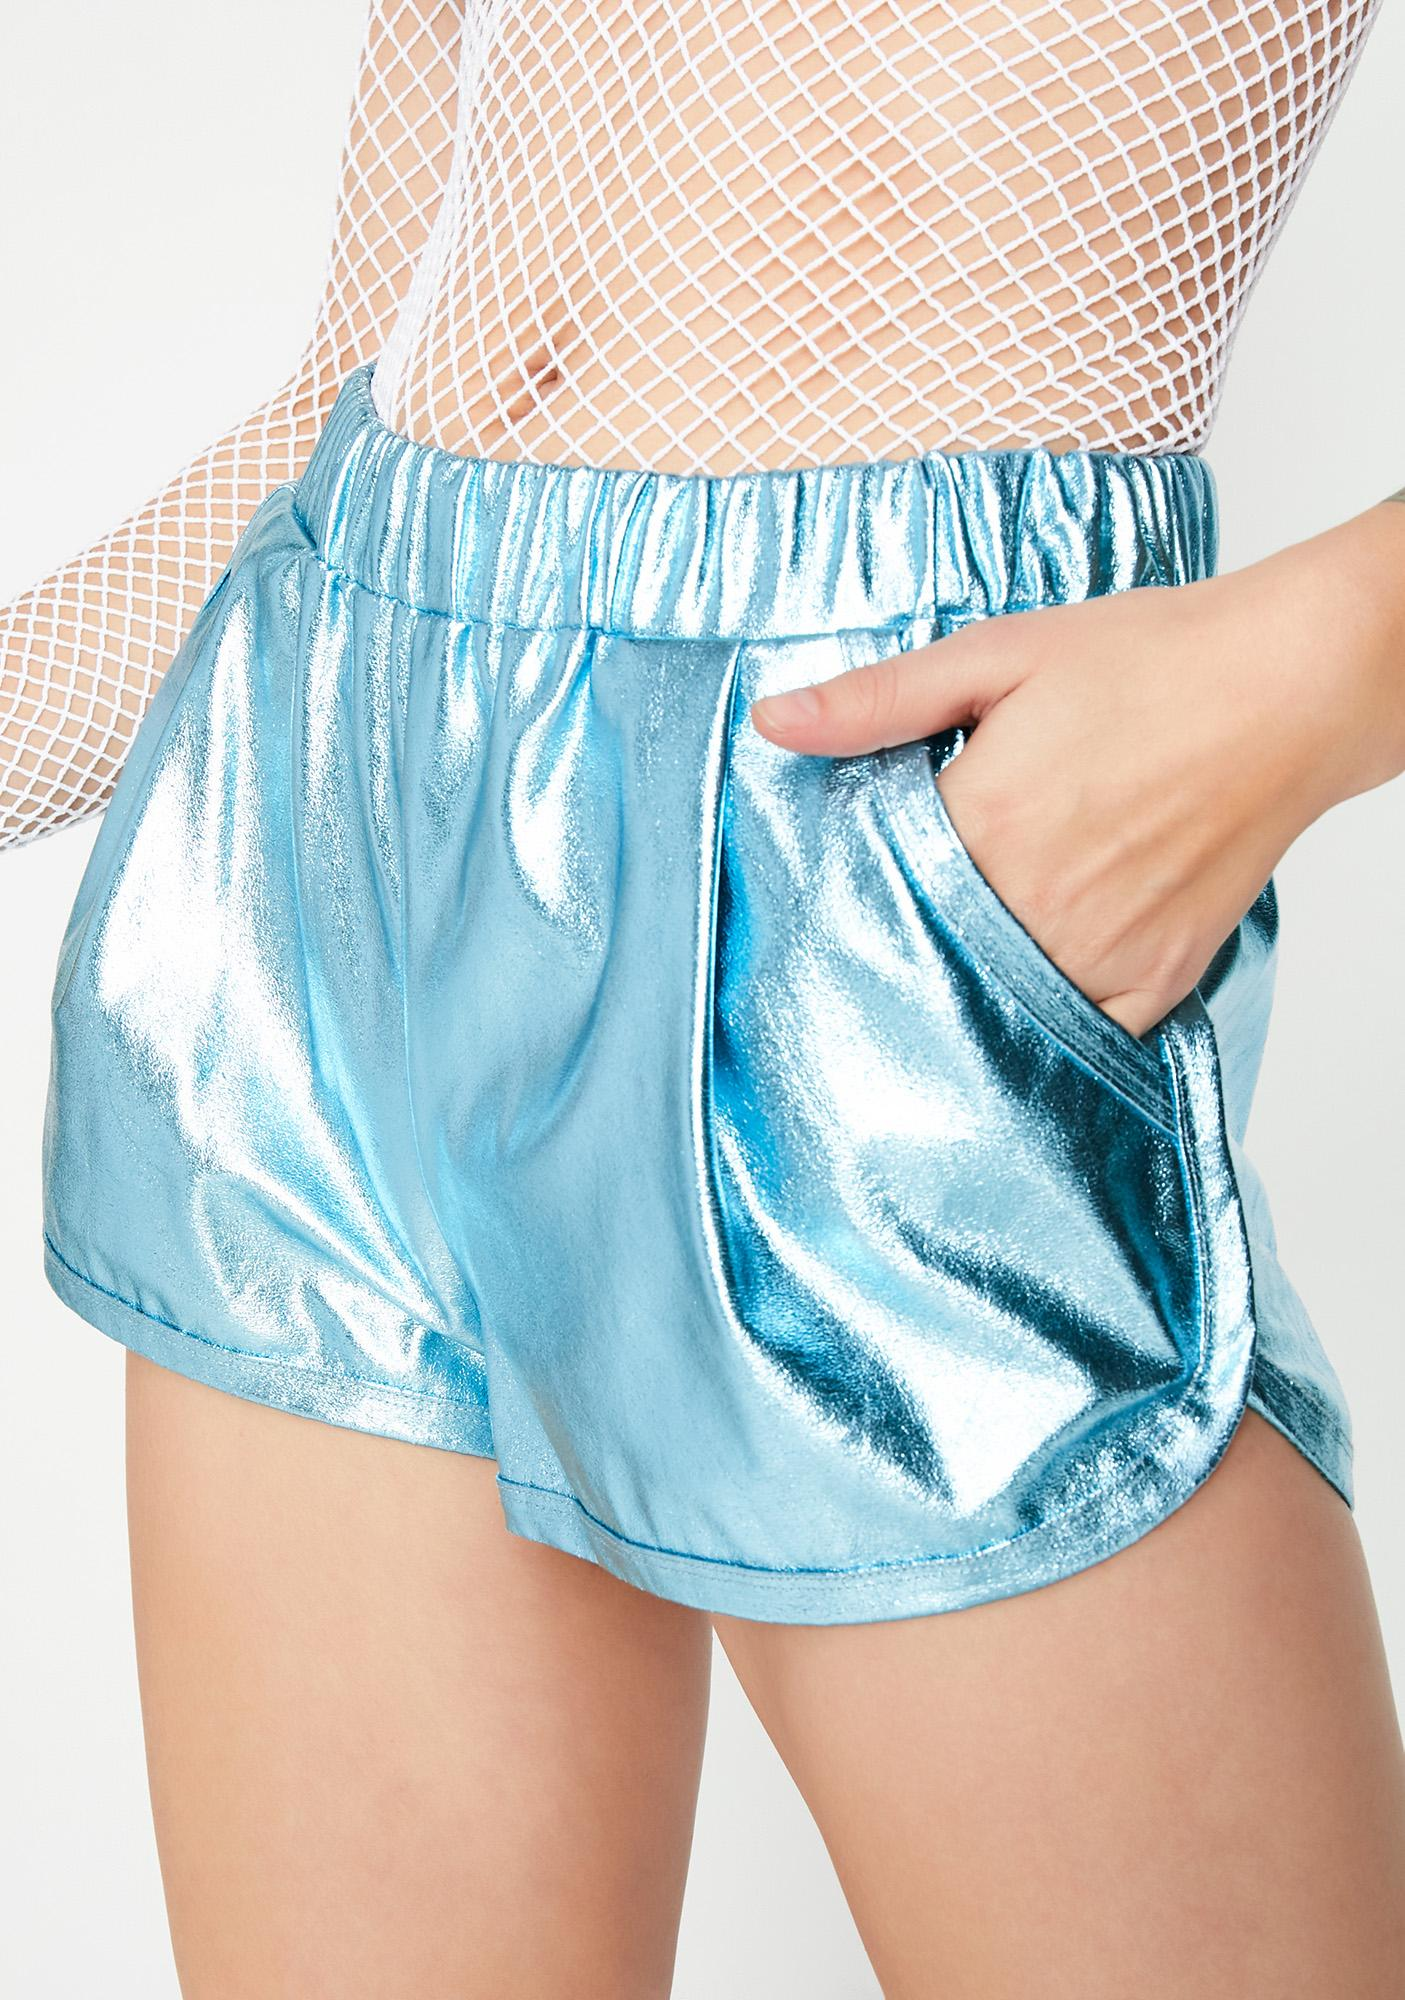 Cold Frosting Metallic Shorts